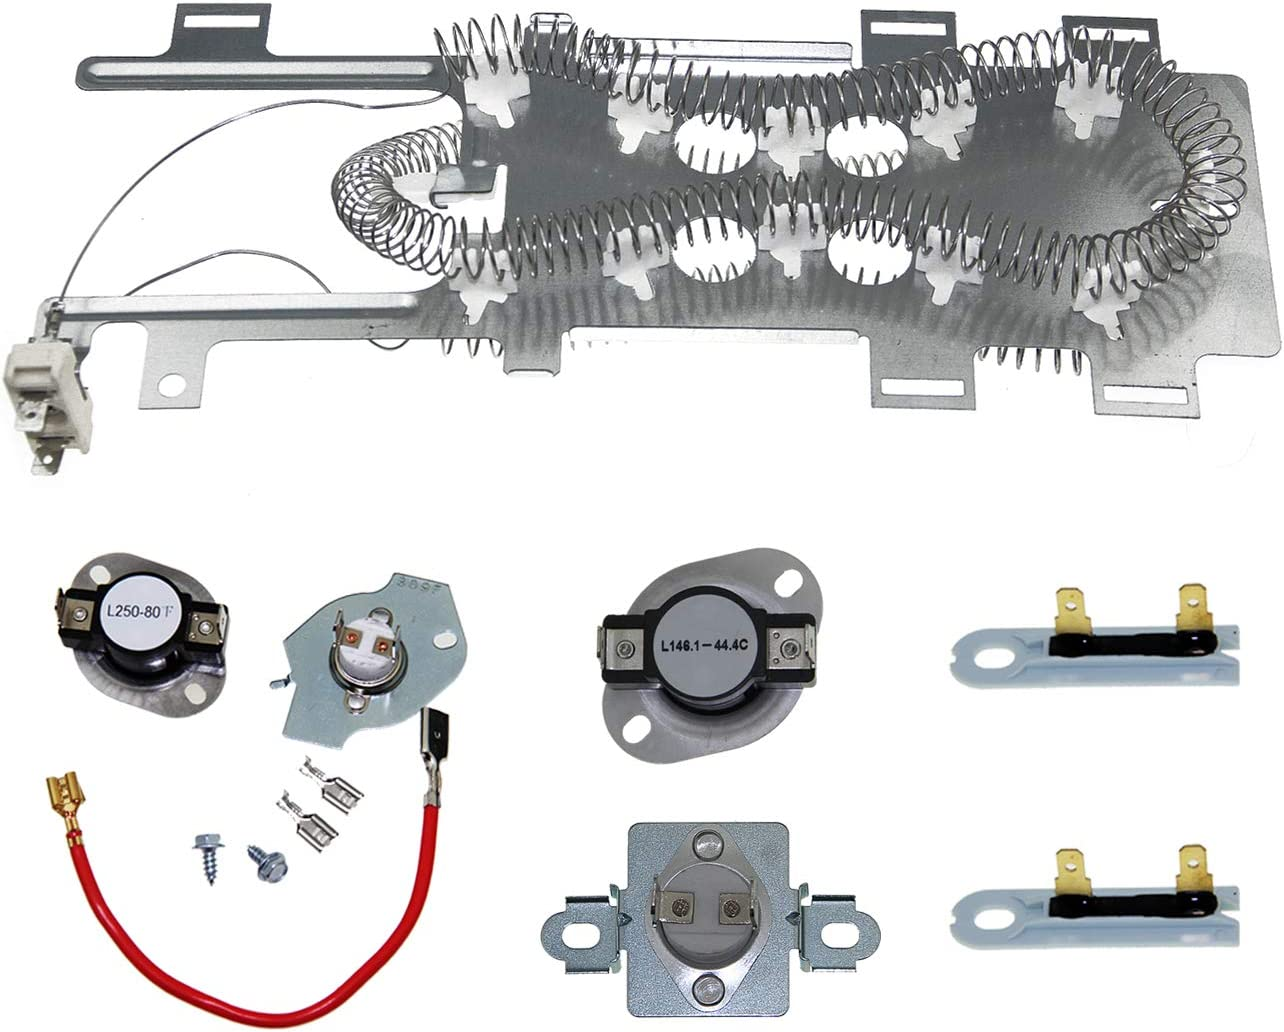 8544771 Dryer Heating Element and 279816 Thermostat Dryer and 279973 3392519 Thermal Fuse Replacement Kit Compatible with Whirlpool,Maytag, Kenmore, and More